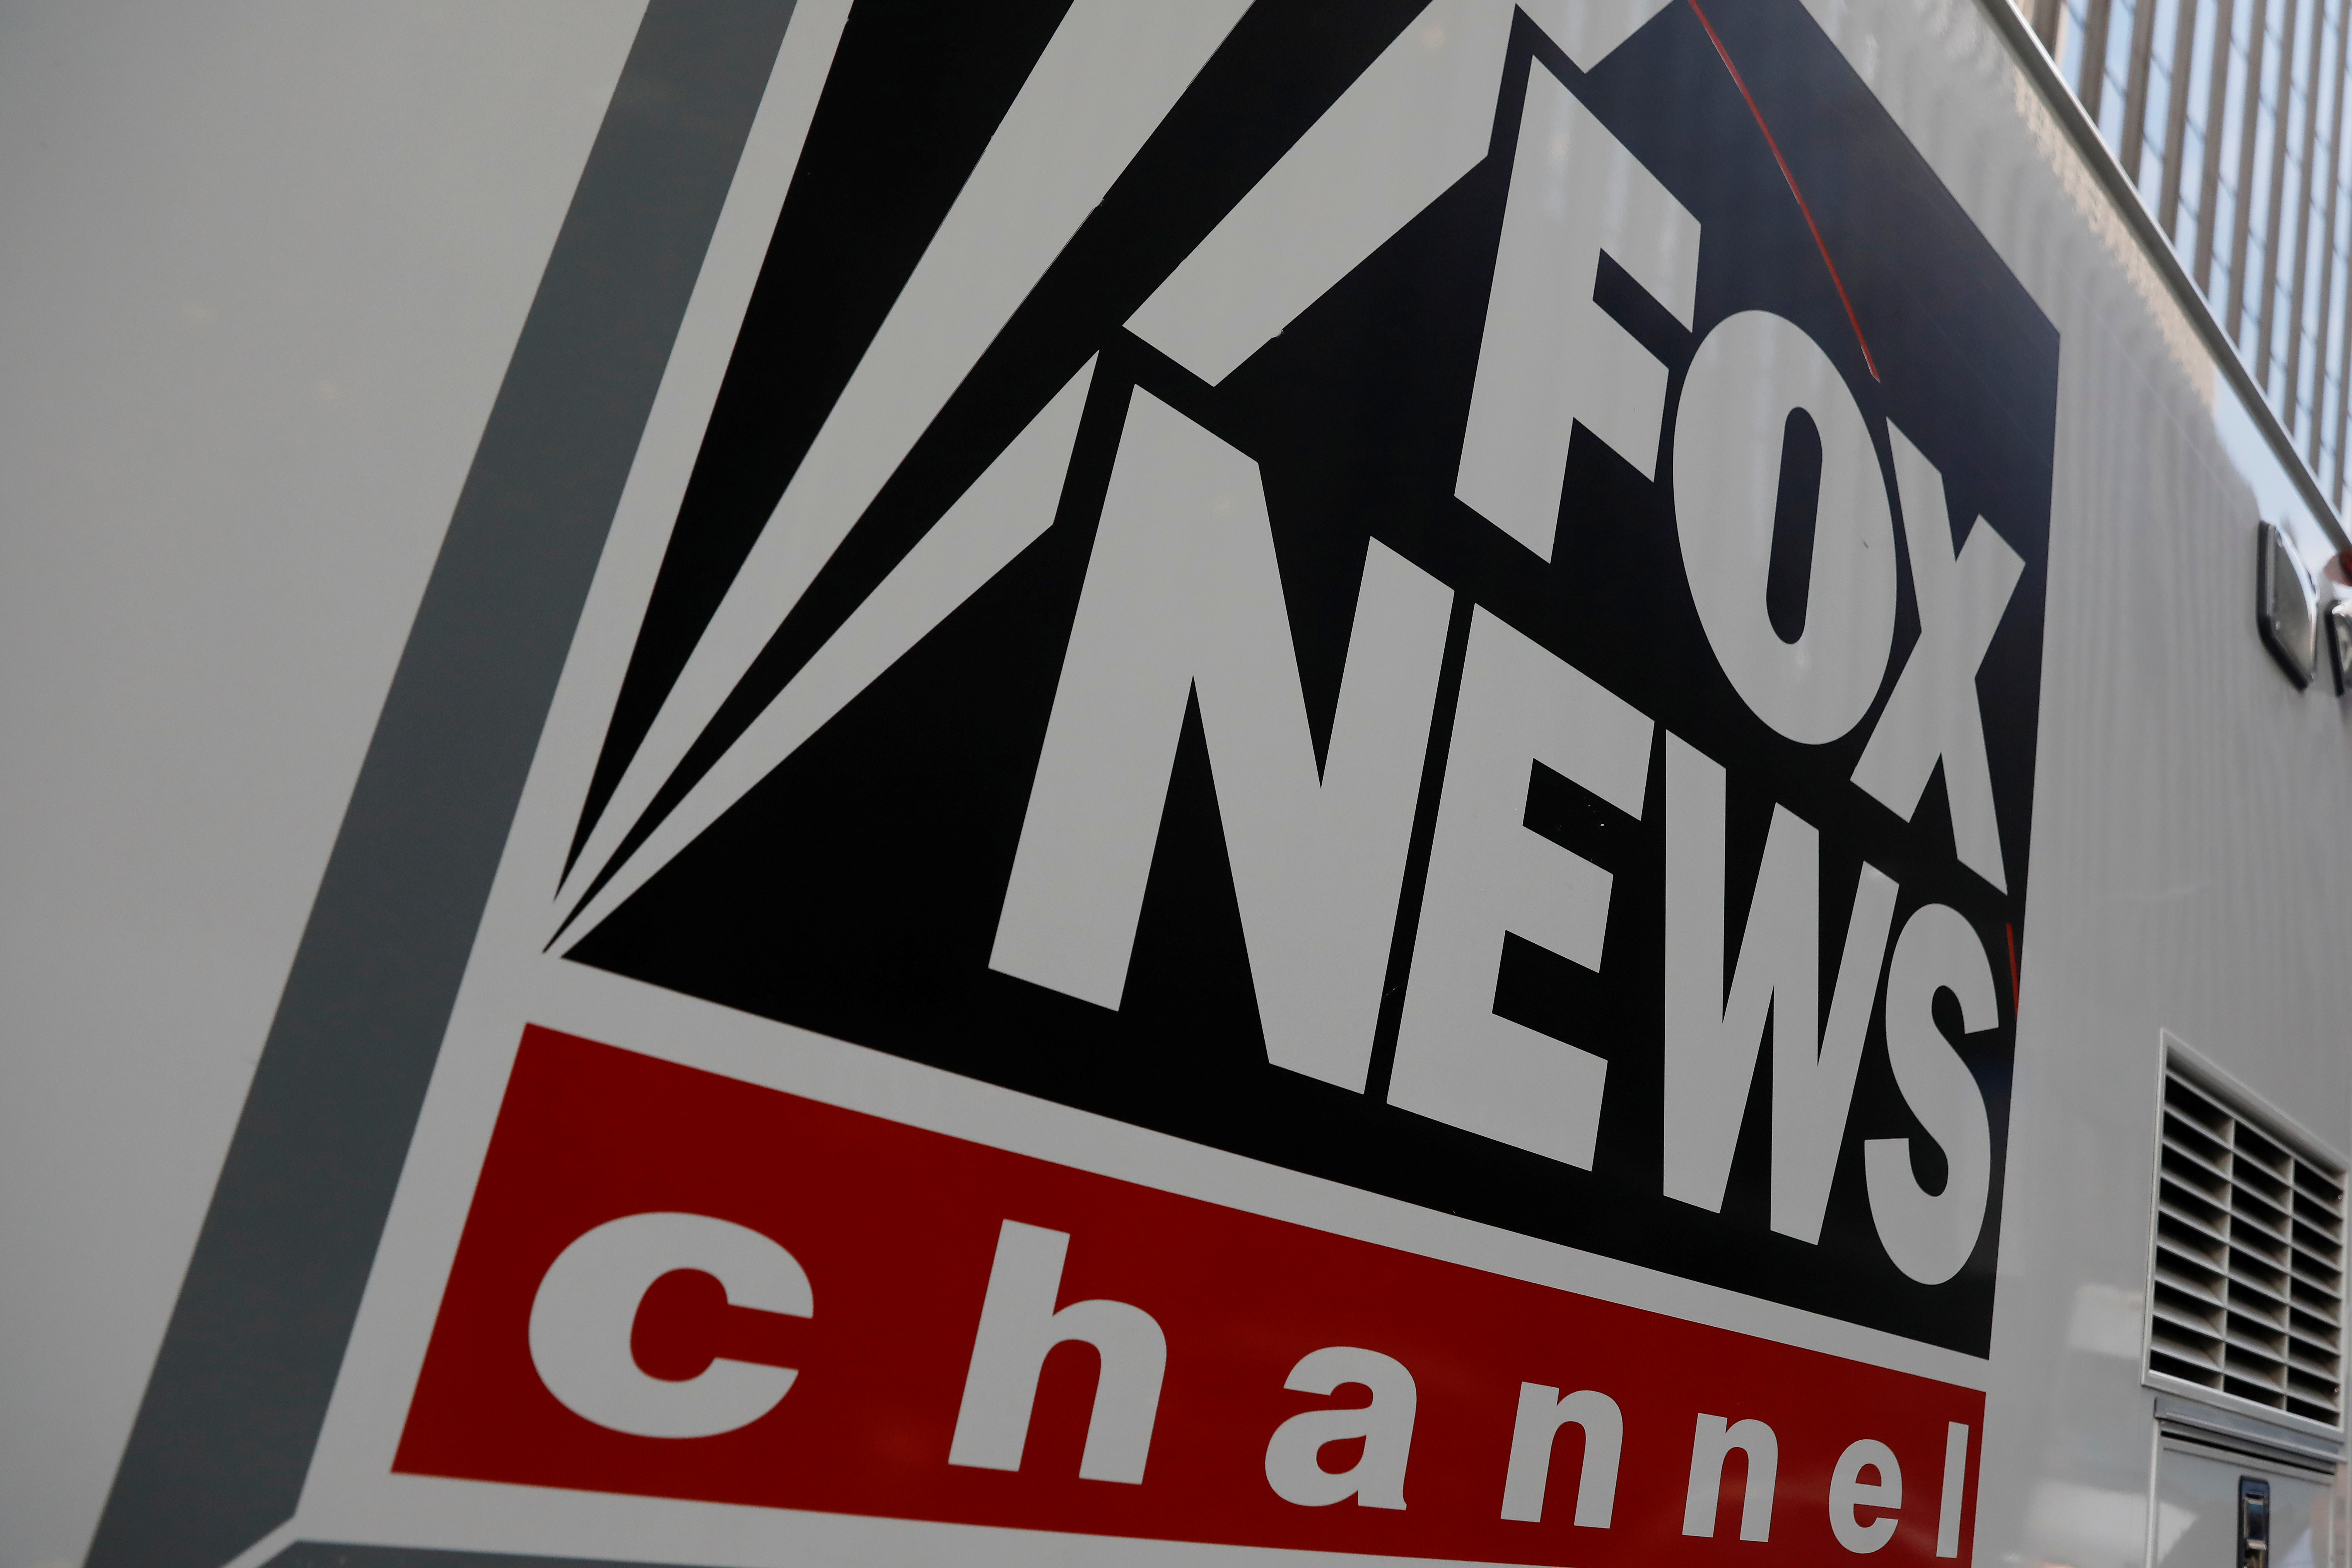 A Fox News channel sign is seen on a television vehicle outside the News Corporation building in New York City. November 8, 2017. REUTERS/Shannon Stapleton